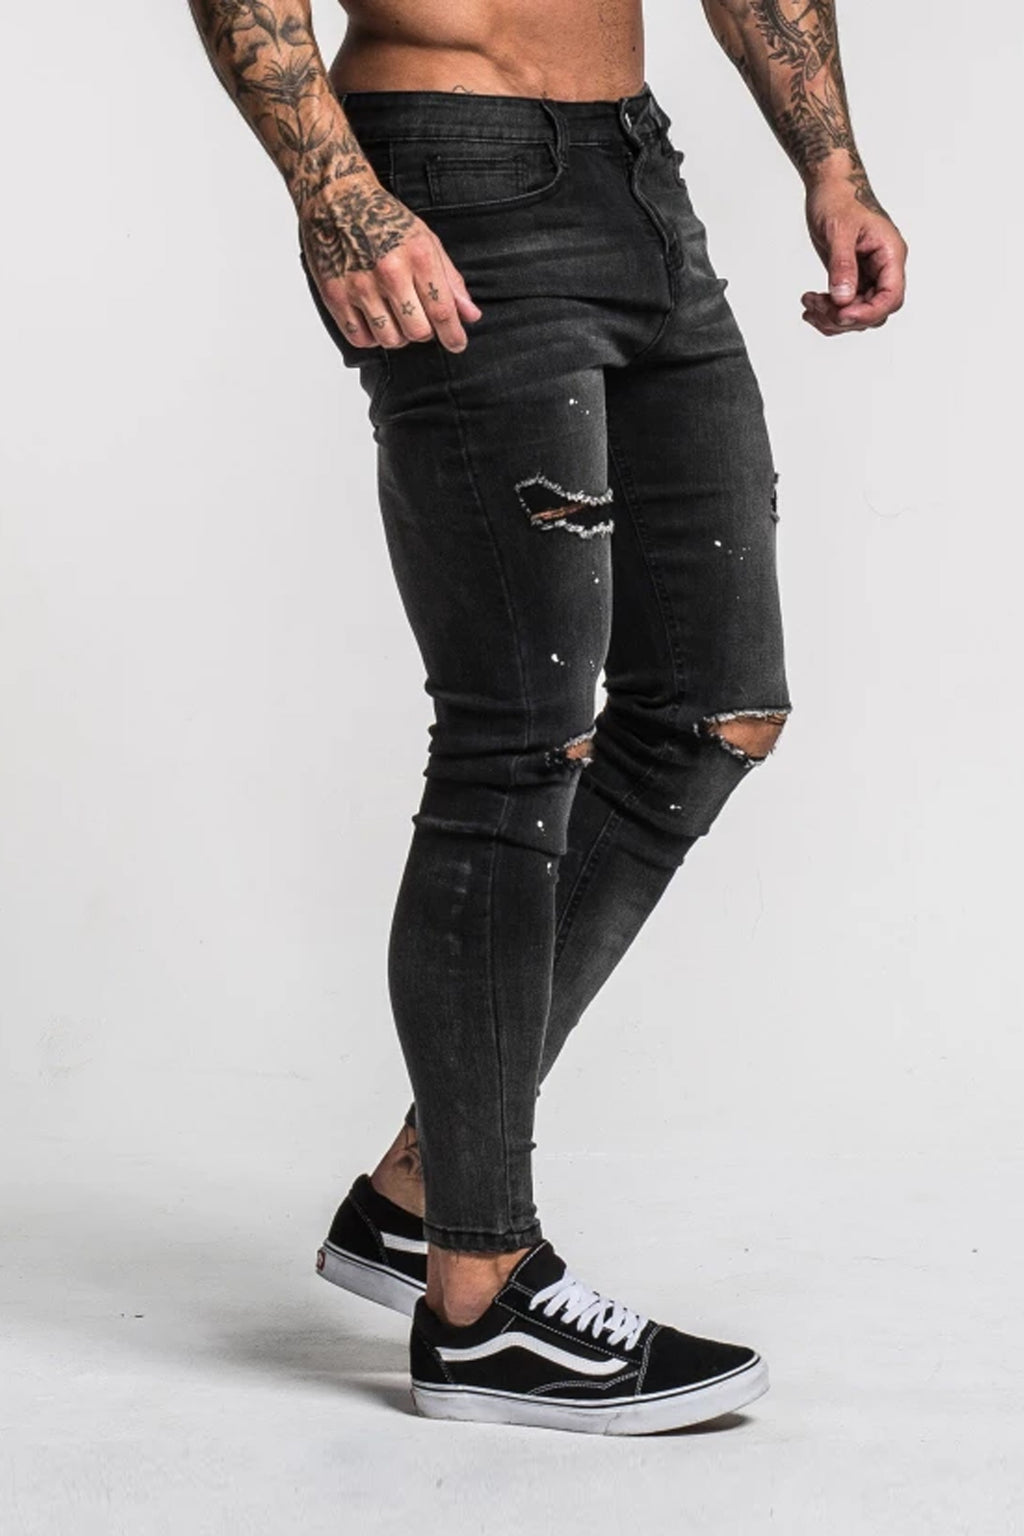 Ripped & Repaired Super Skinny Jeans - Black / Paint Splatter - SVPPLY. STUDIOS